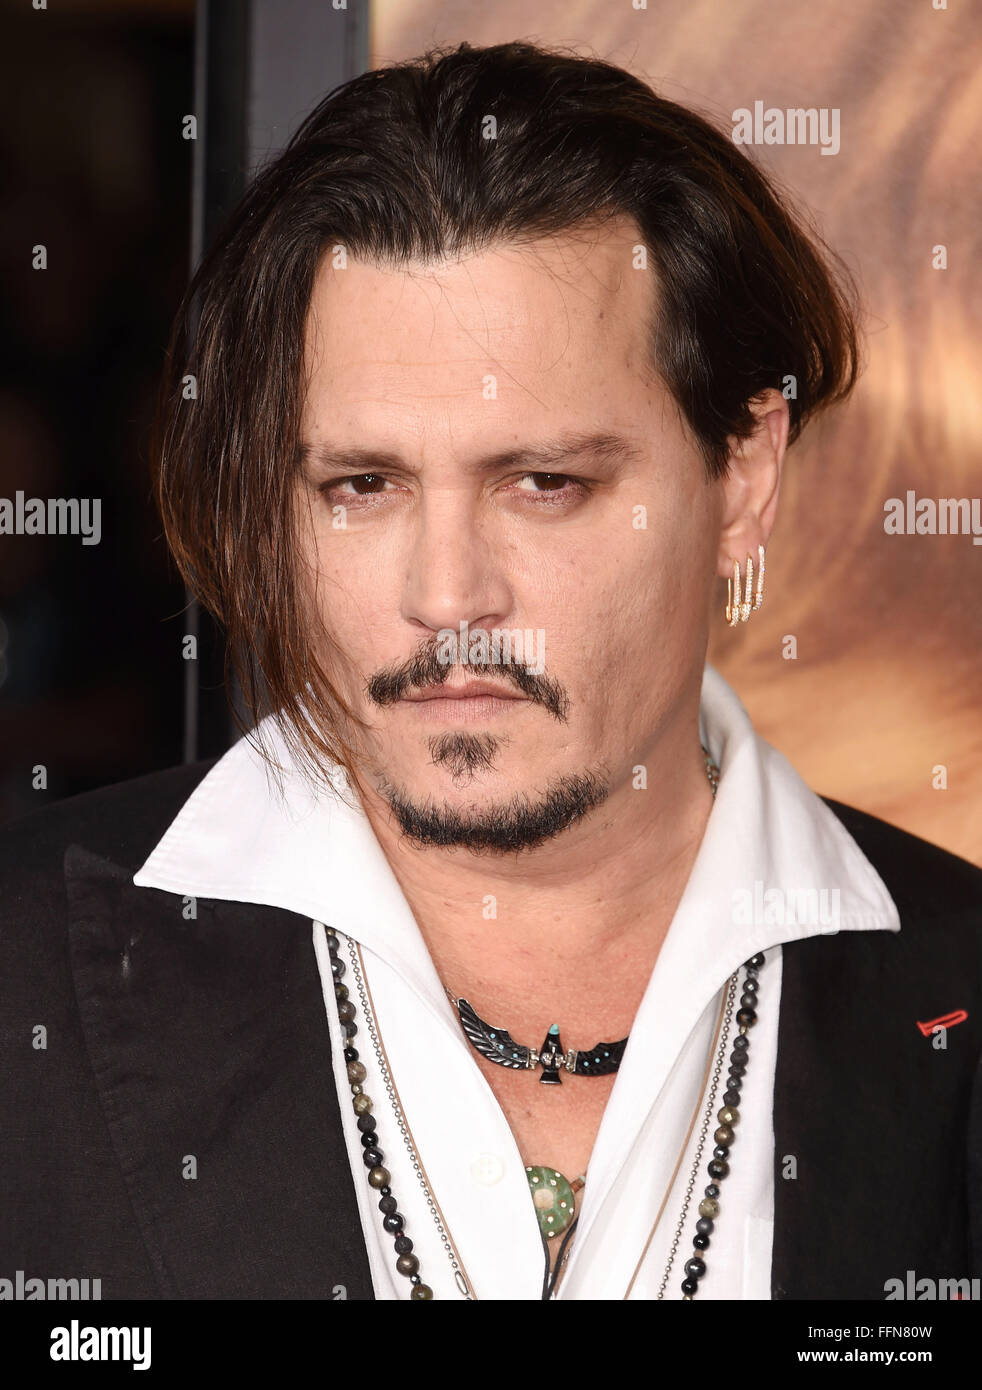 "Actor Johnny Depp arrives at the premiere of Focus Features' ""The Danish Girl"" at Westwood Village Theatre on November Stock Photo"